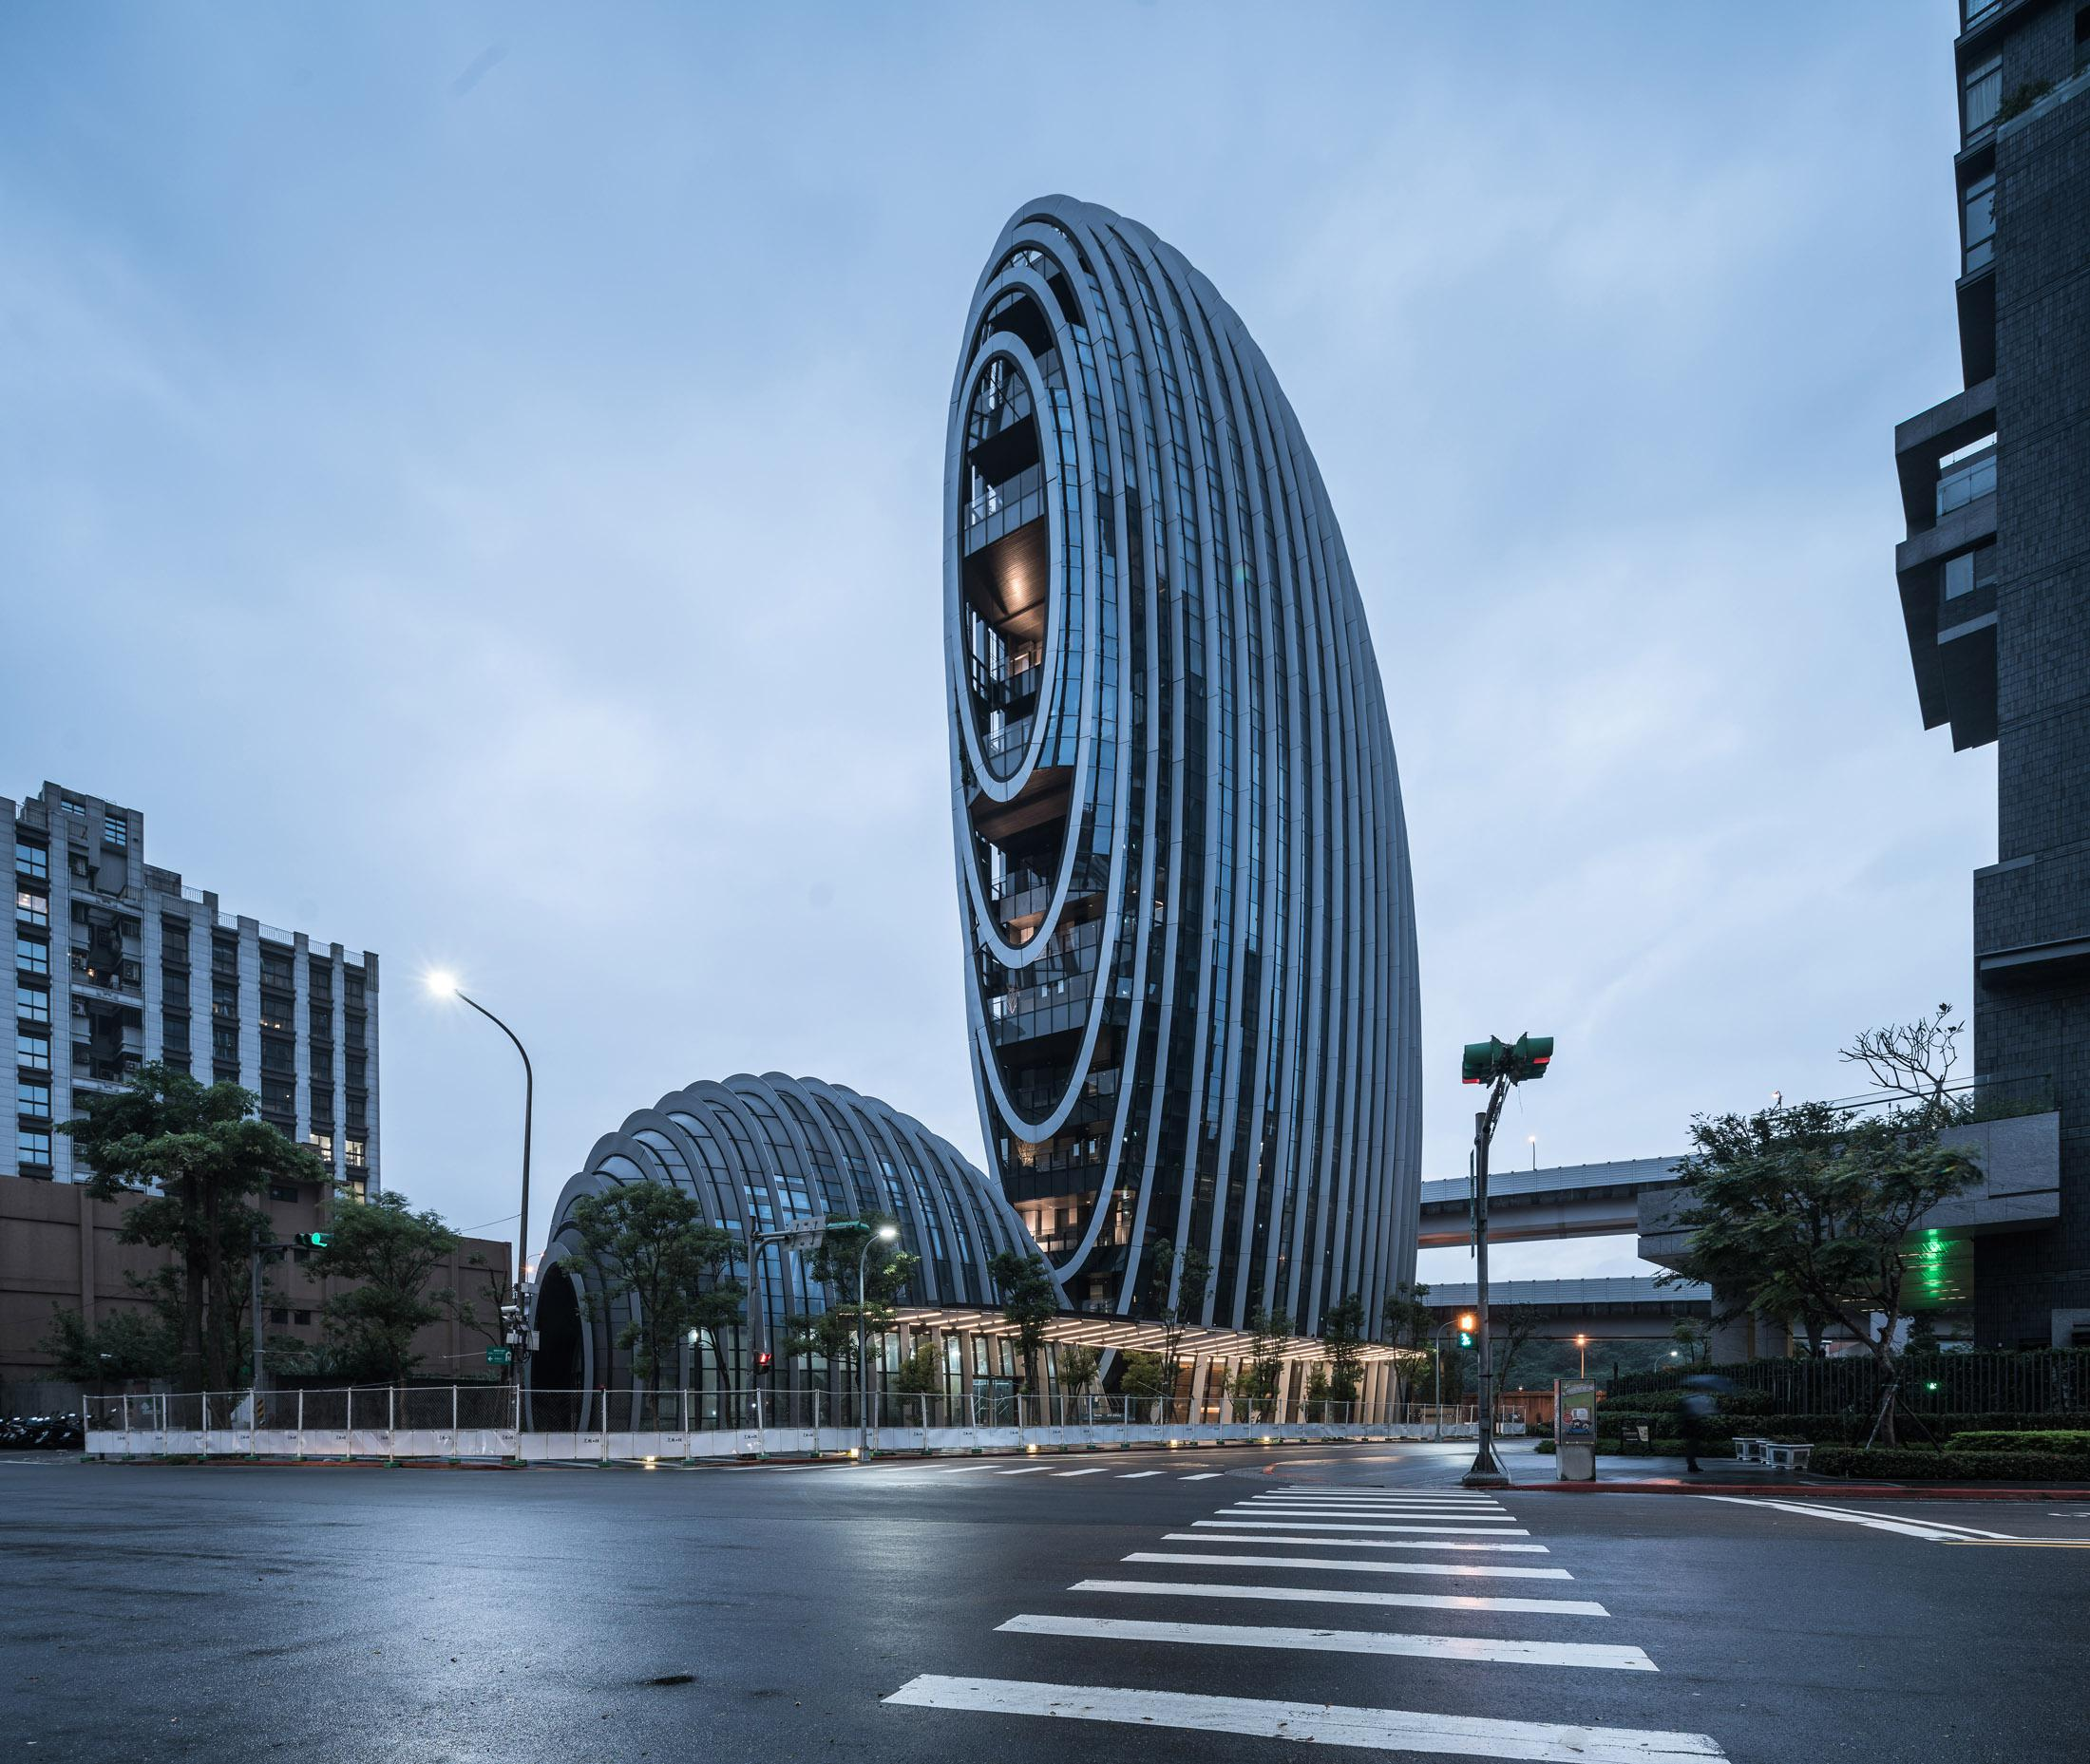 Pin by Q Zg on 央美建筑 in 2020 (With images) | Architecture